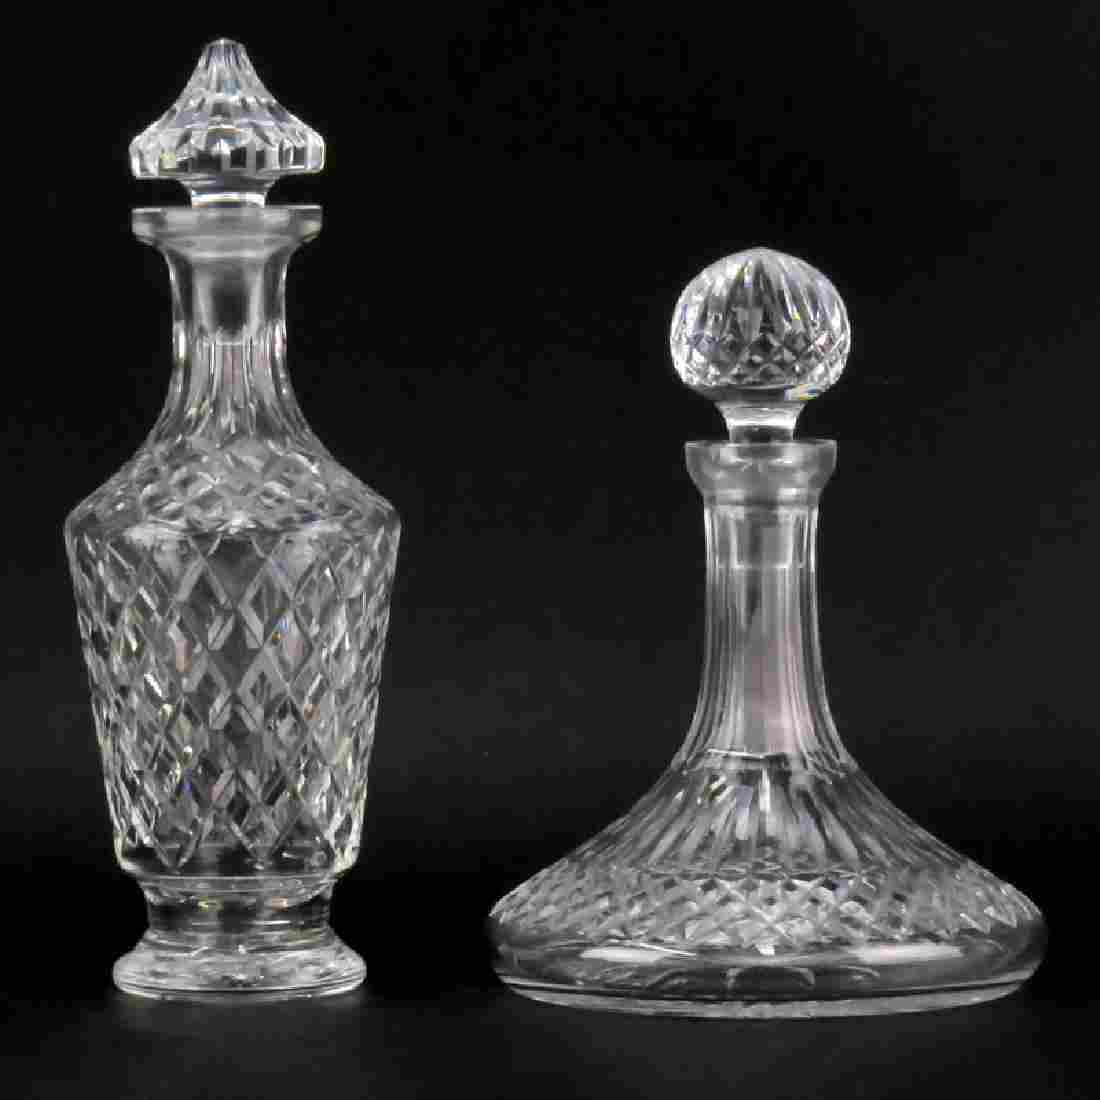 Grouping of Two (2) Waterford Cut Crystal Decanters.